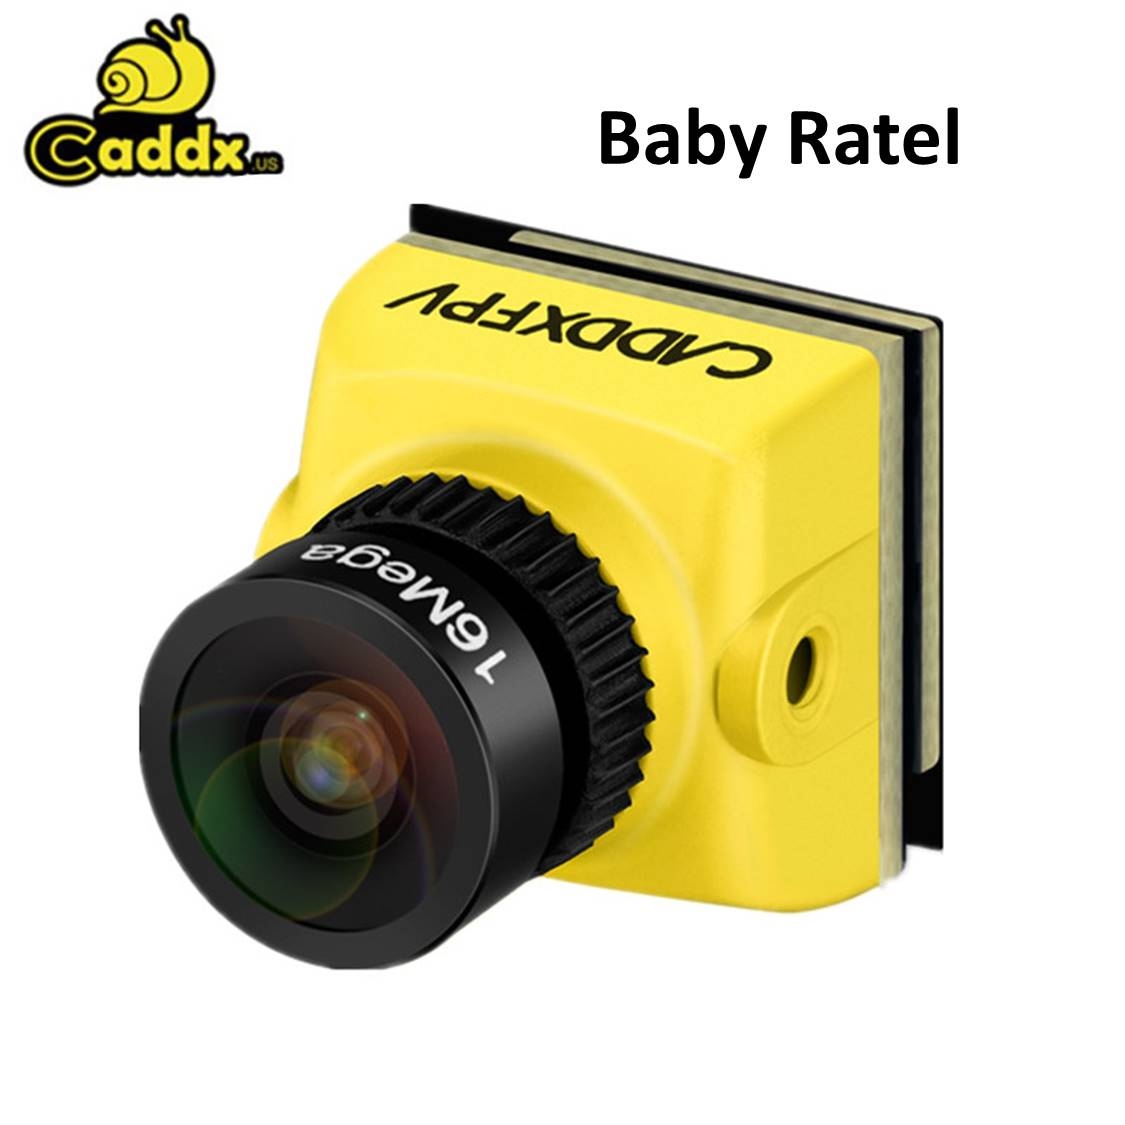 Caddx Baby Ratel Mini FPV Camera 1200TVL 1/1.8'' Starlight HDR 0.0001 LUX Super Night Version 14*14mm For FPV Racer Drone